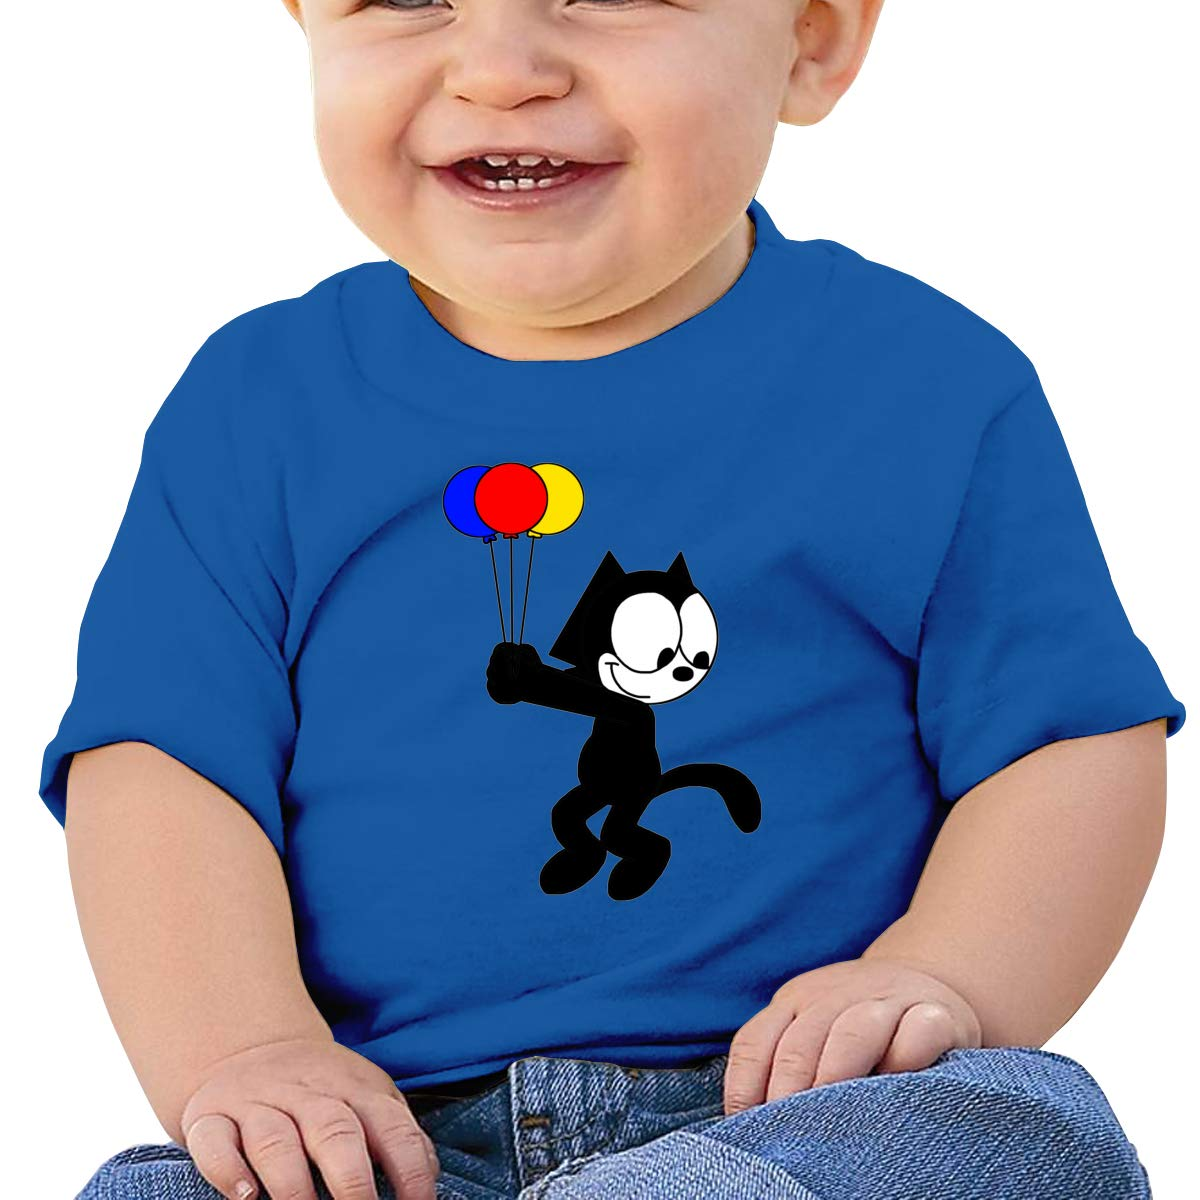 Boys Girls Shirts Smart Felix The Pussy Cat Baby Tees Durable Blue Tank Top for Children